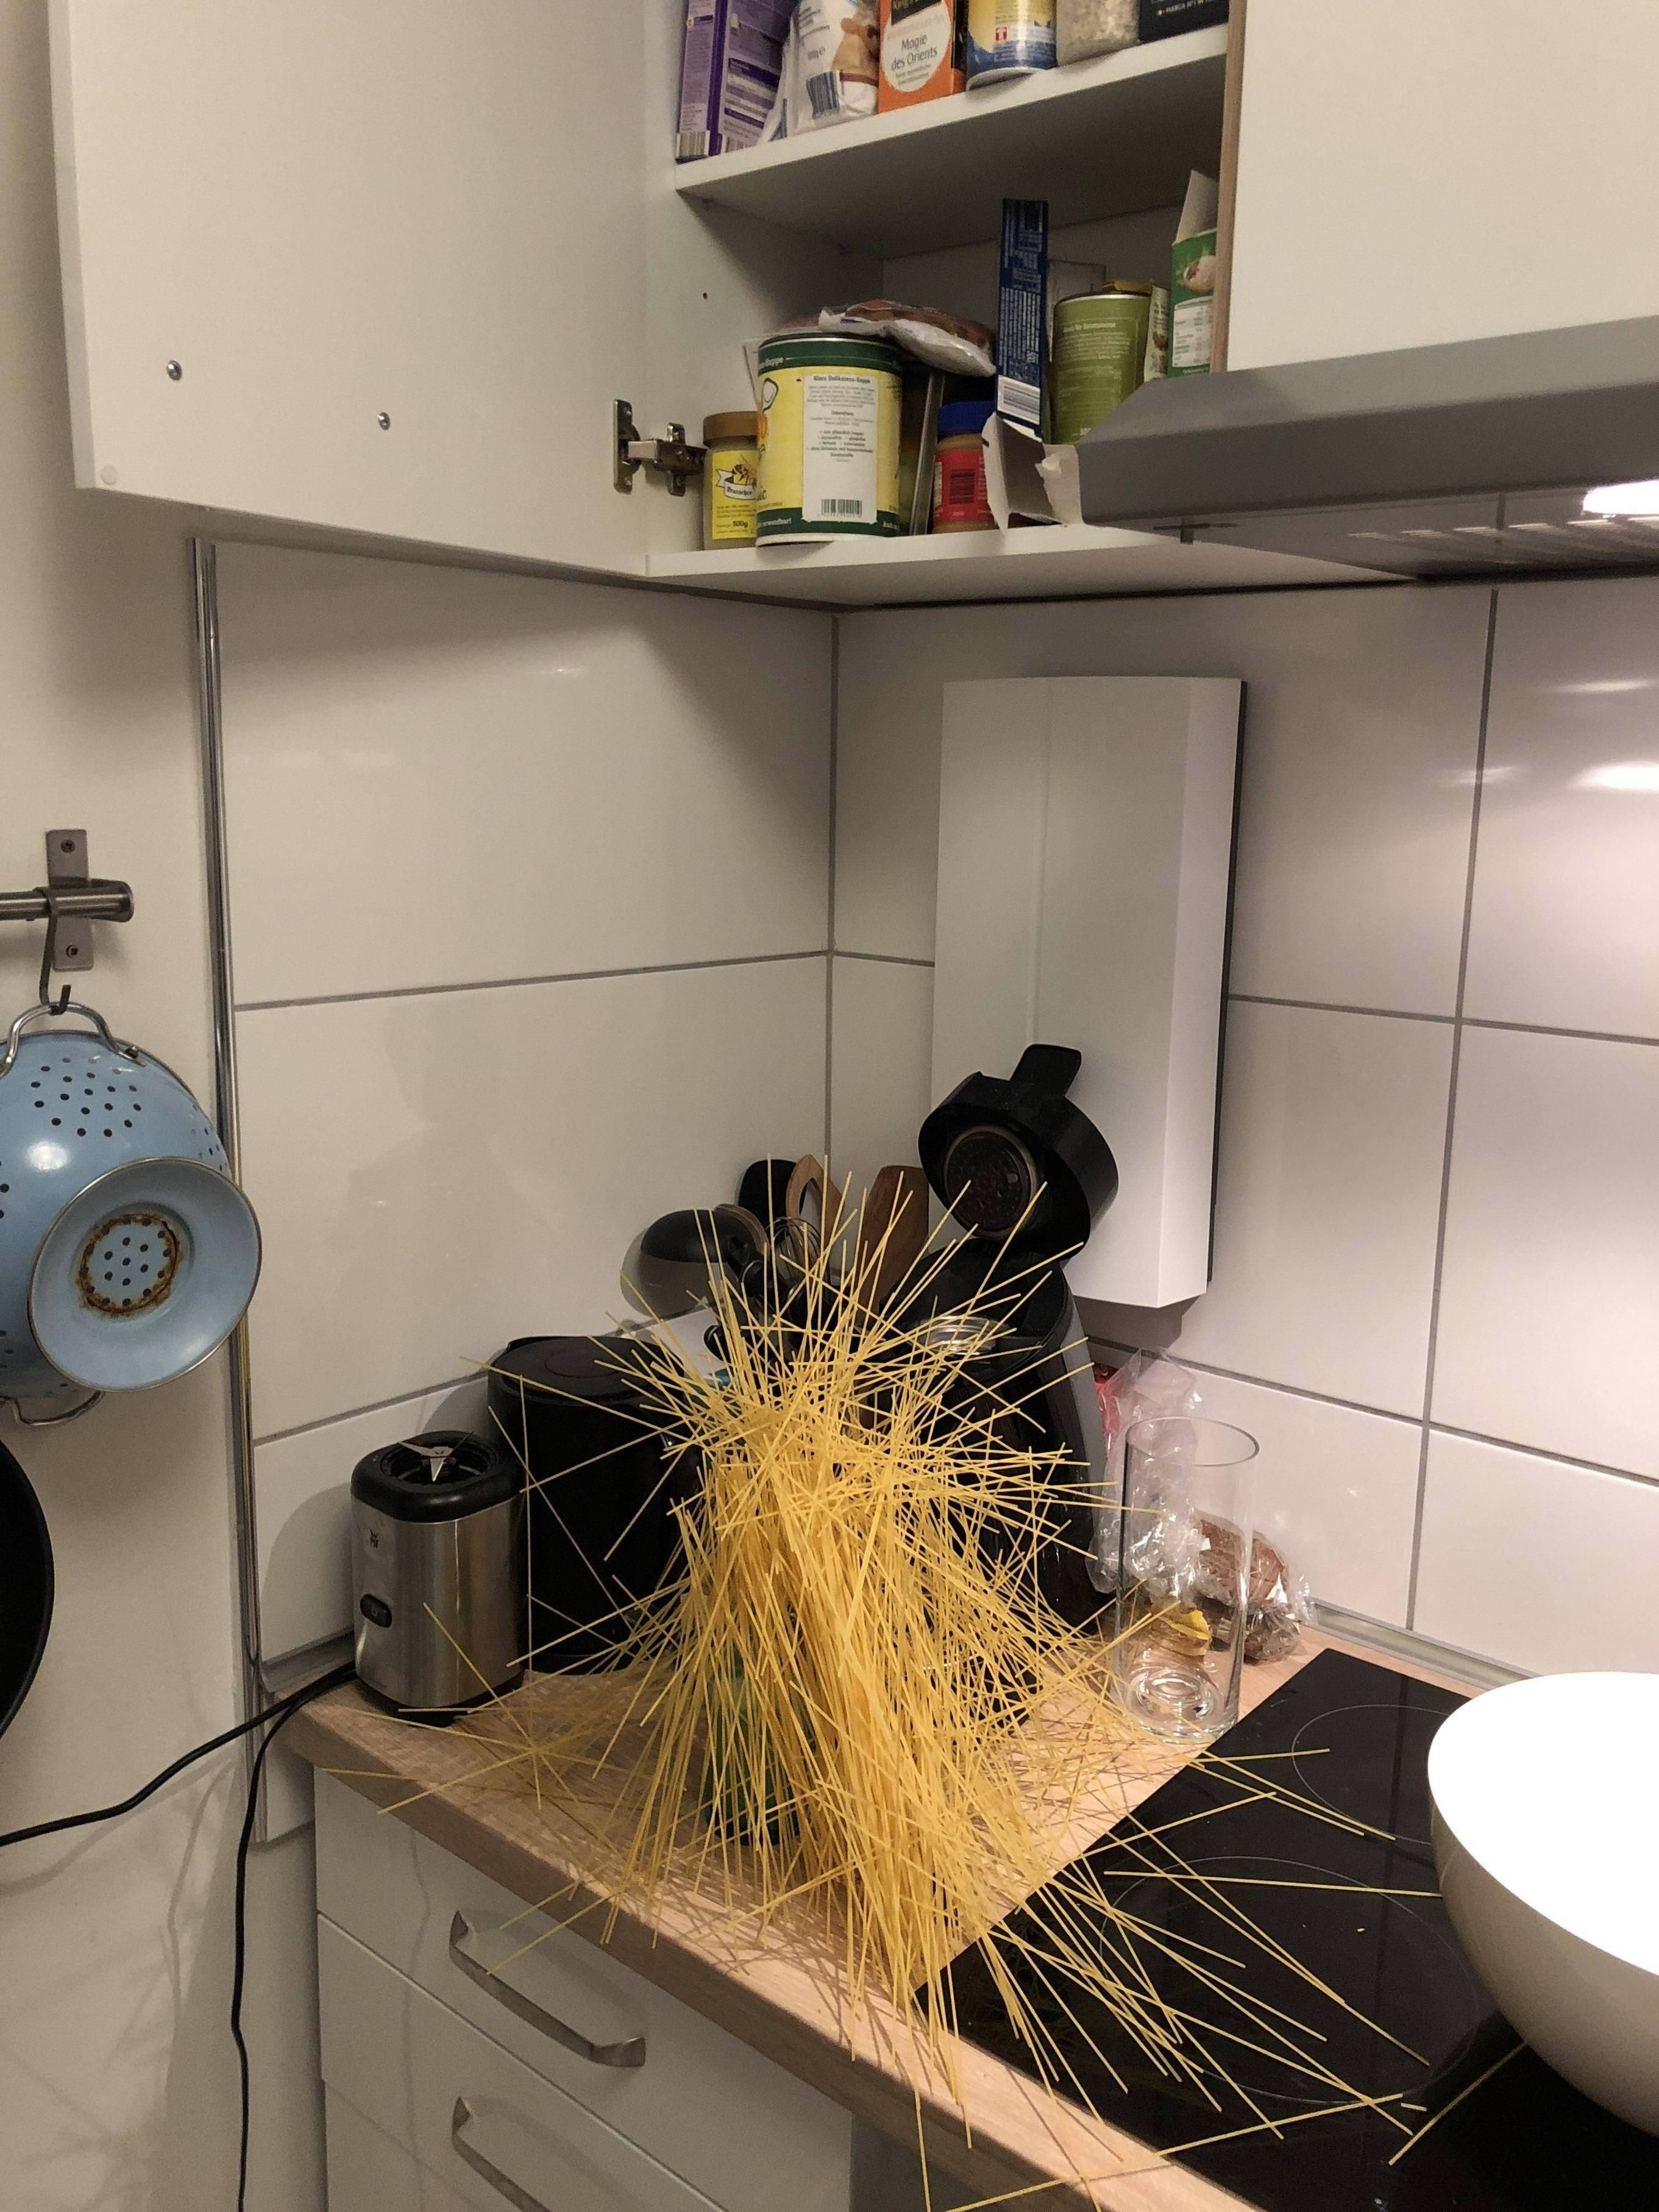 Opened the cupboard and the spaghetti just fell out like that. I think I created a piece of art.